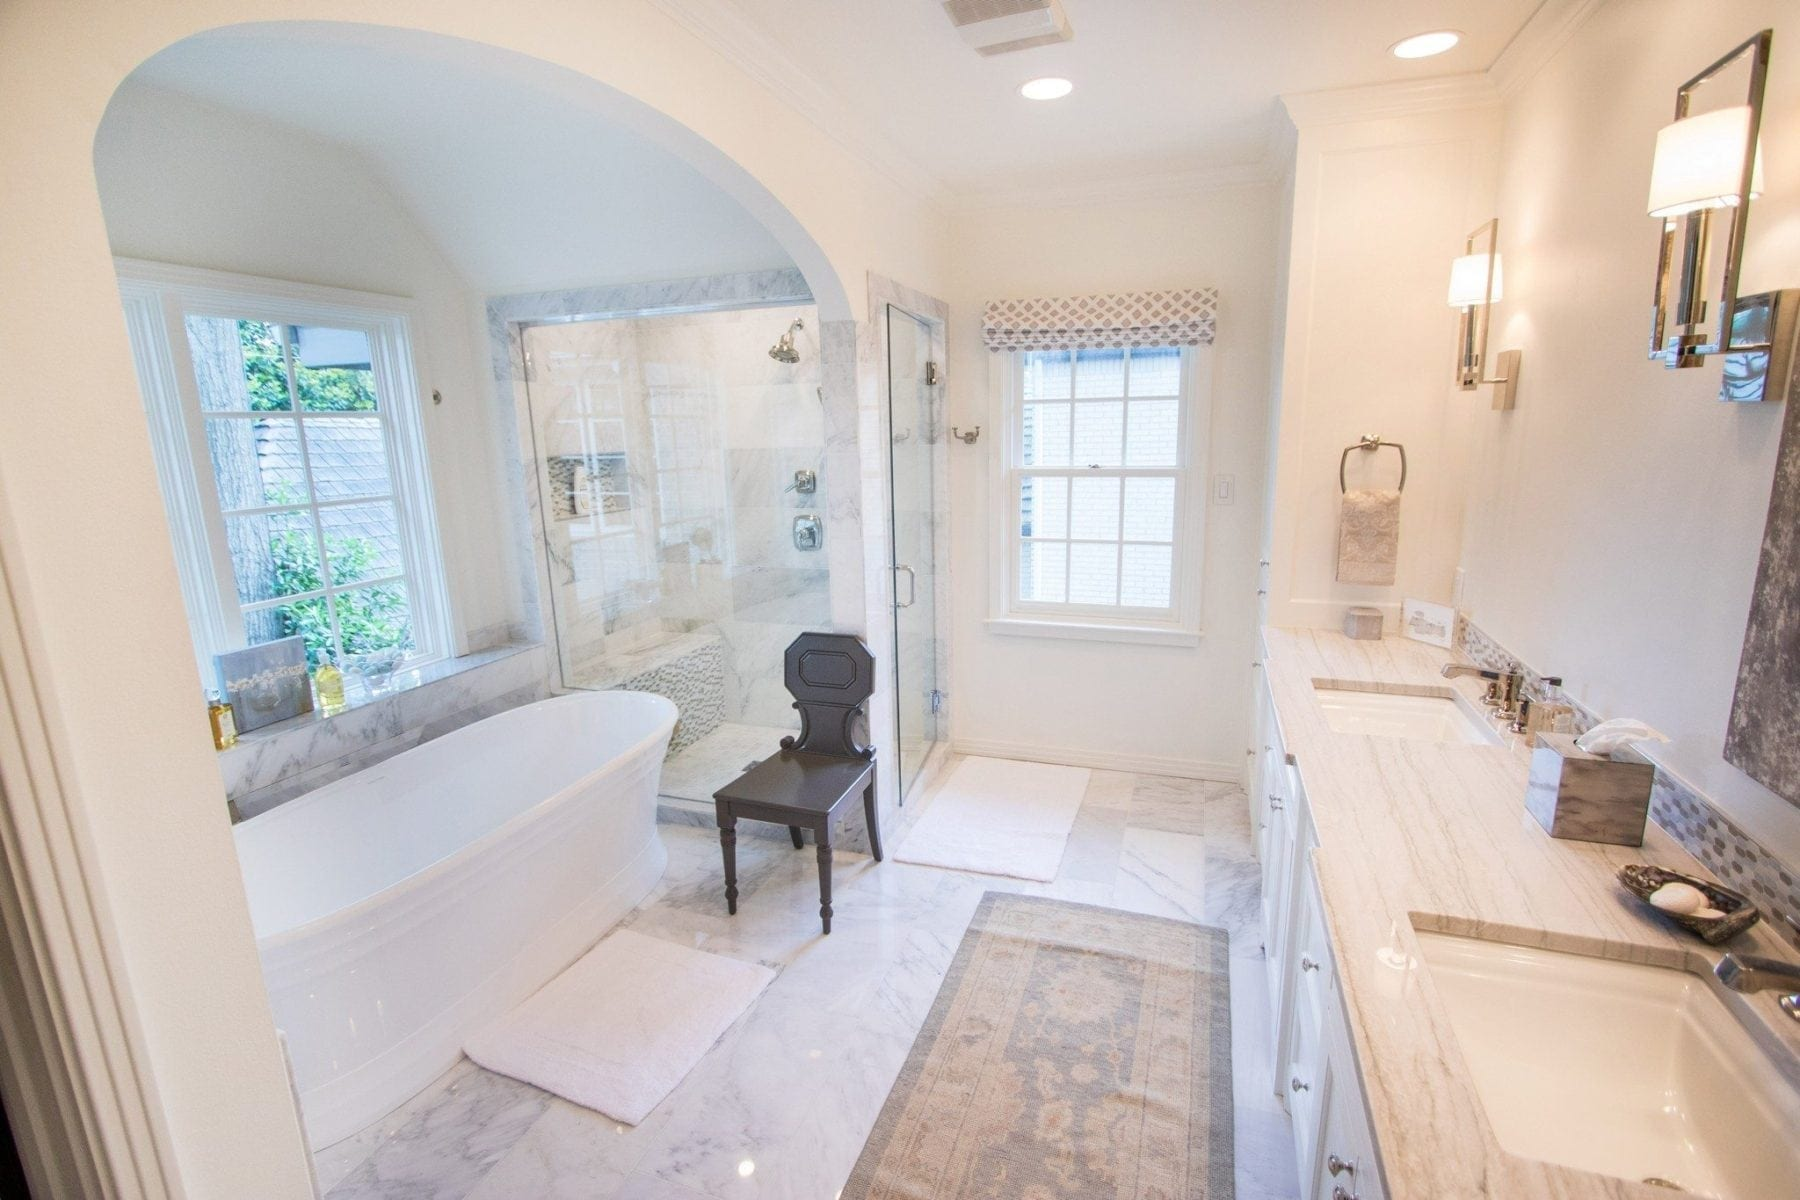 bathroom gallery - renowned renovation